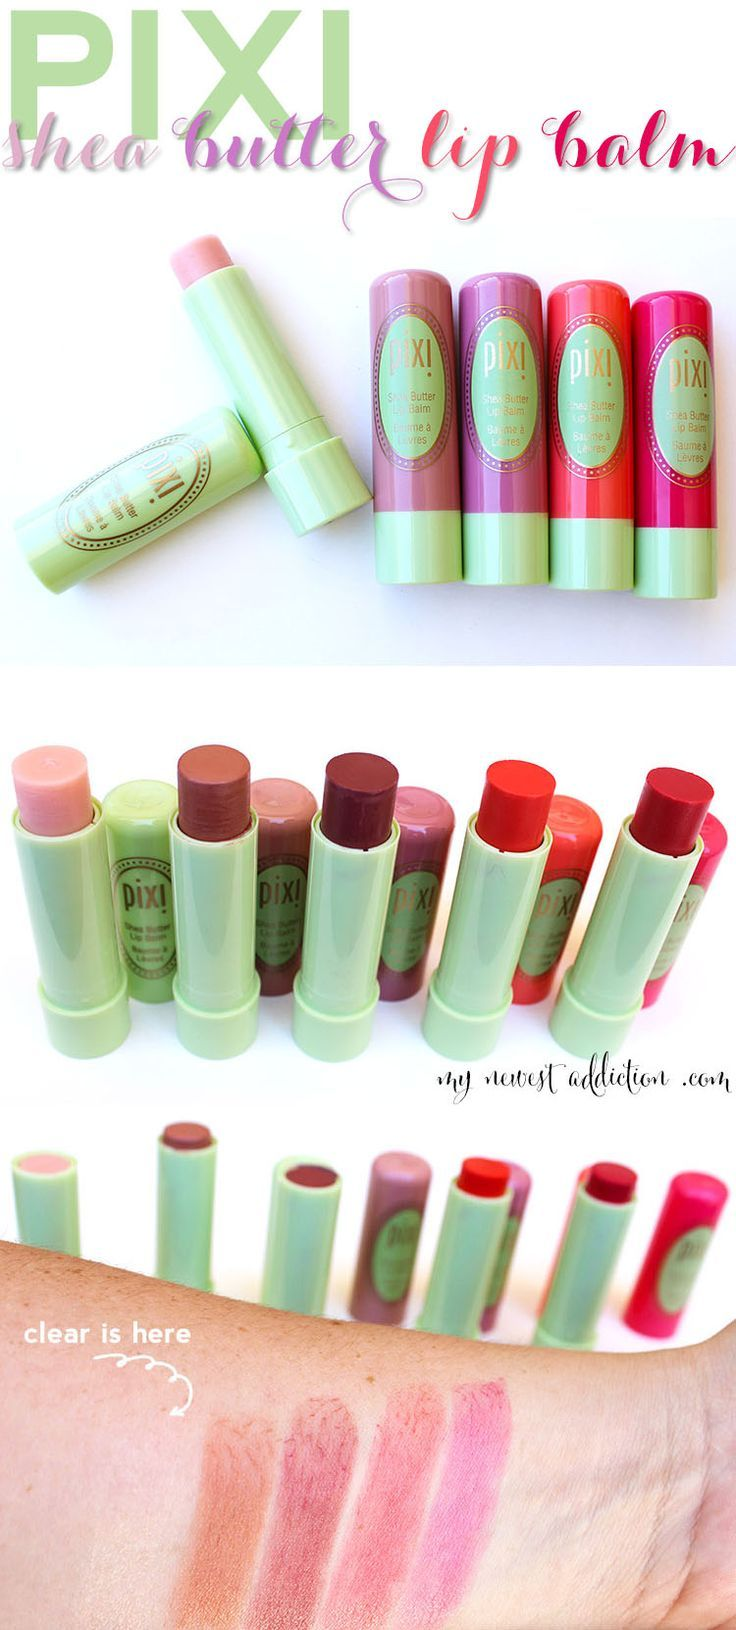 """""""Between the Shea Butter and the Vitamin E these Pixi Tinted Lip Balms one of the best, if not THE BEST, tinted lip balm I have ever tried."""" @makeupbylaurag loves them and we think you will too! http://www.mynewestaddiction.com/2014/06/pixi-shea-butter-lip-balm.html"""